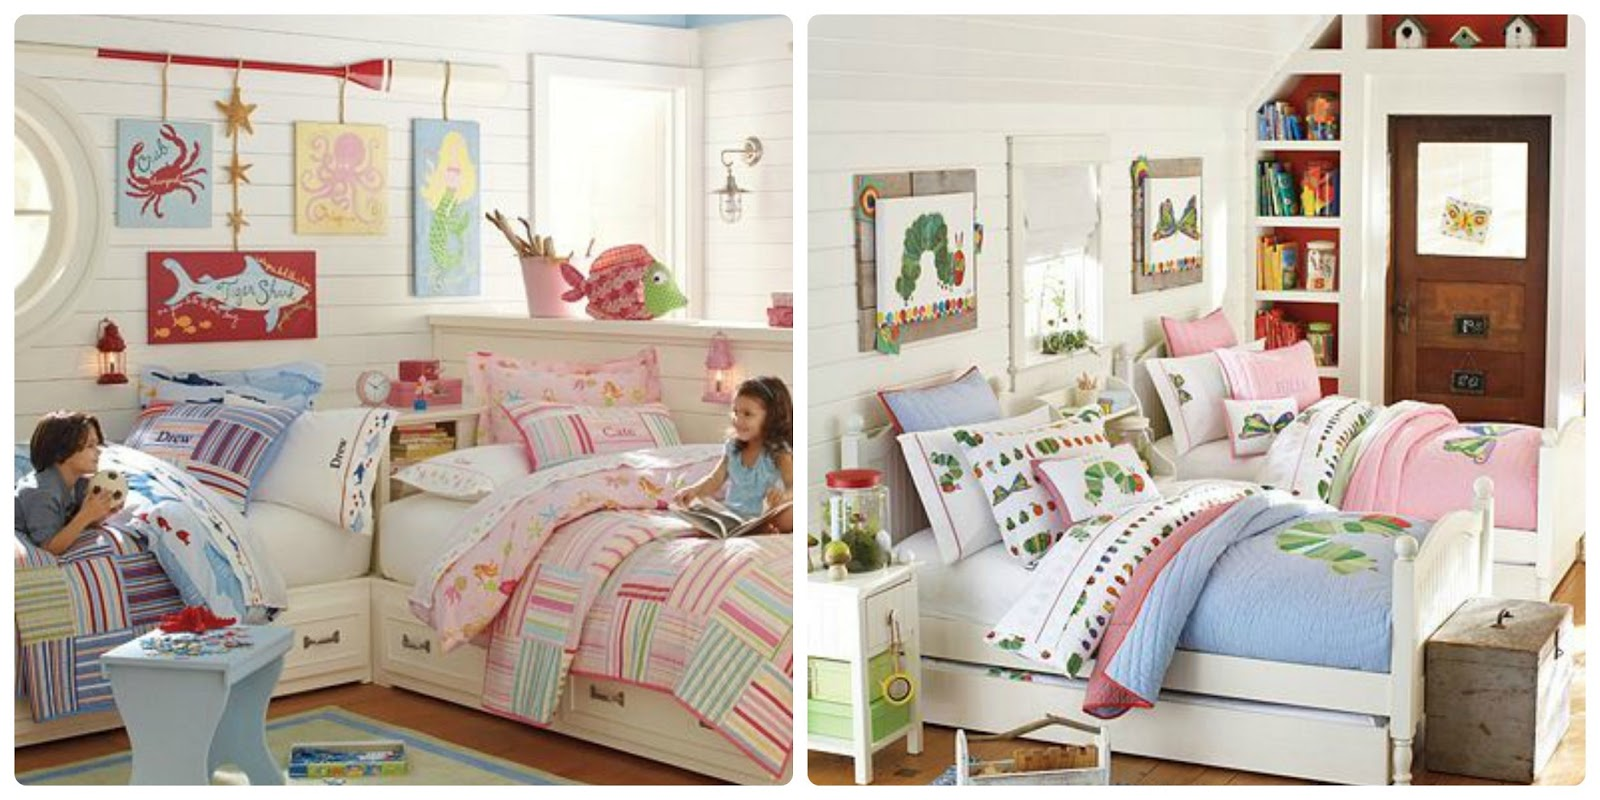 Design Boy And Girl Shared Room Ideas pepper and buttons best boy girl shared room ideas 07 may 2013